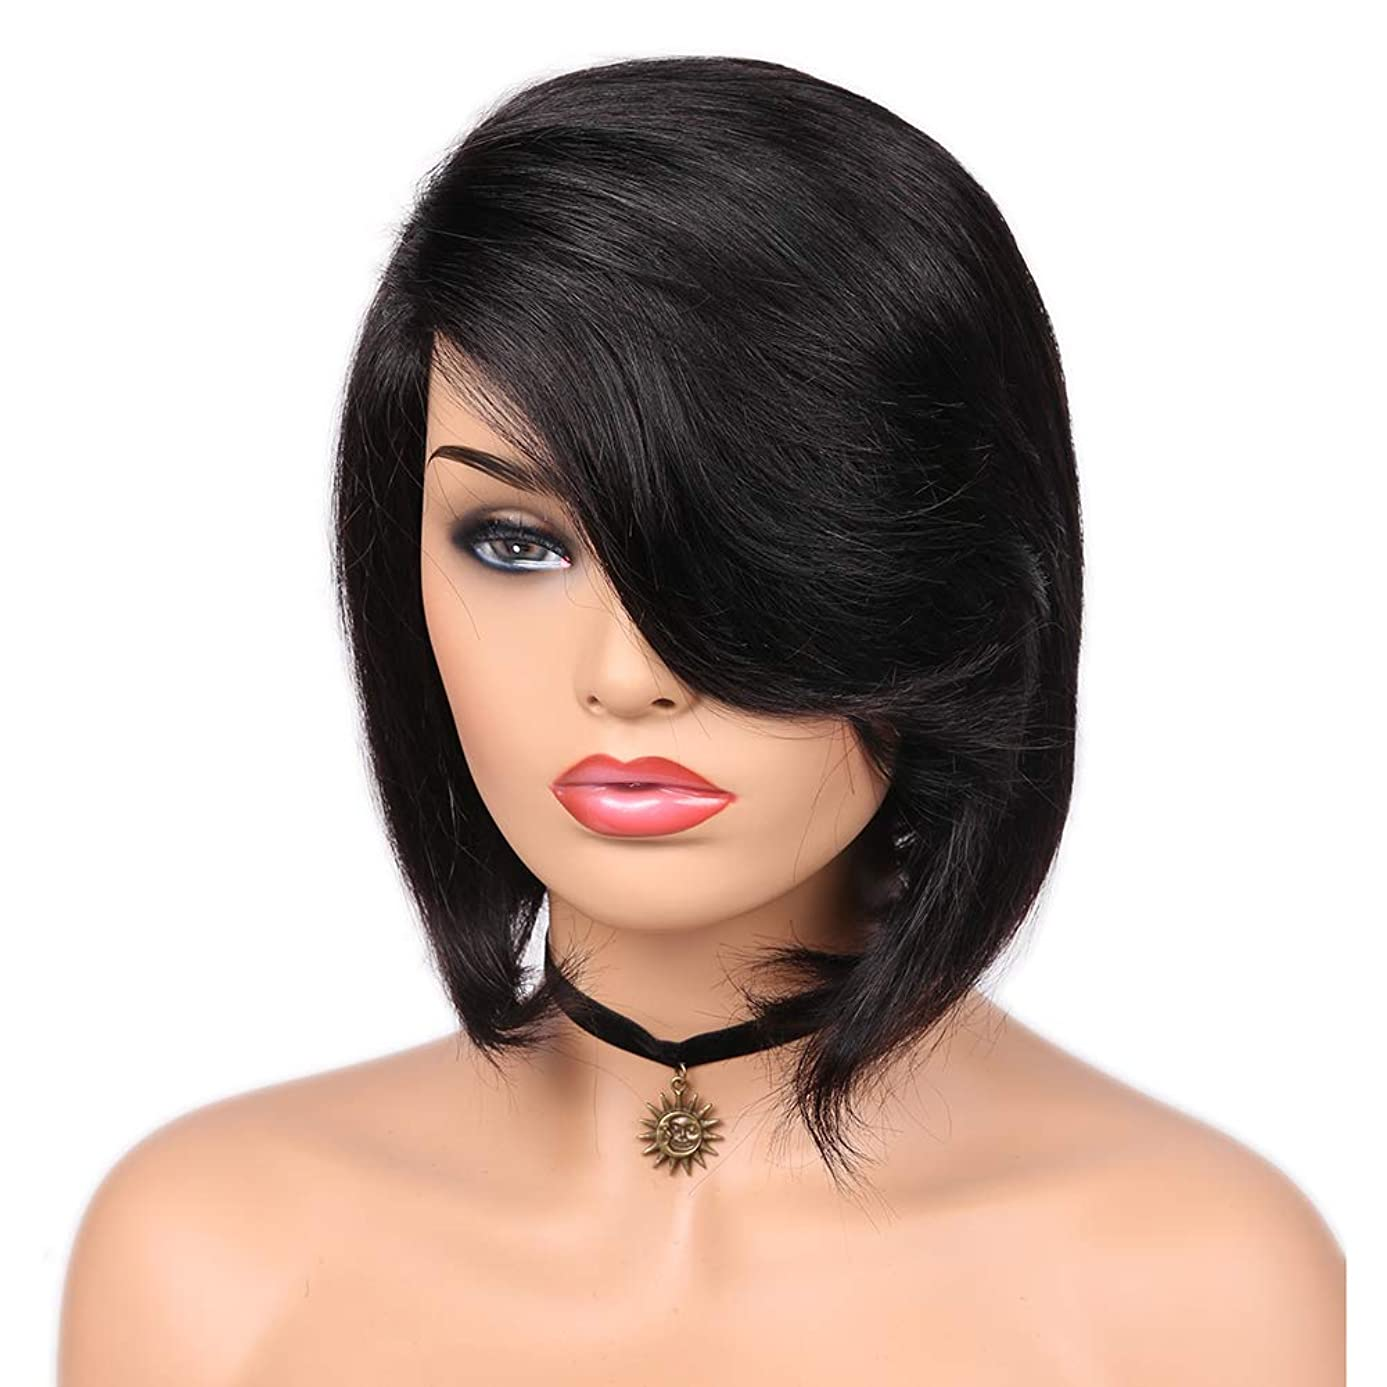 Quantum Love Lace Part Human Hair Wigs with Bangs Side Part Straight Brazilian Virgin Human Hair Wig Short Bob Natural Color Wig for Women